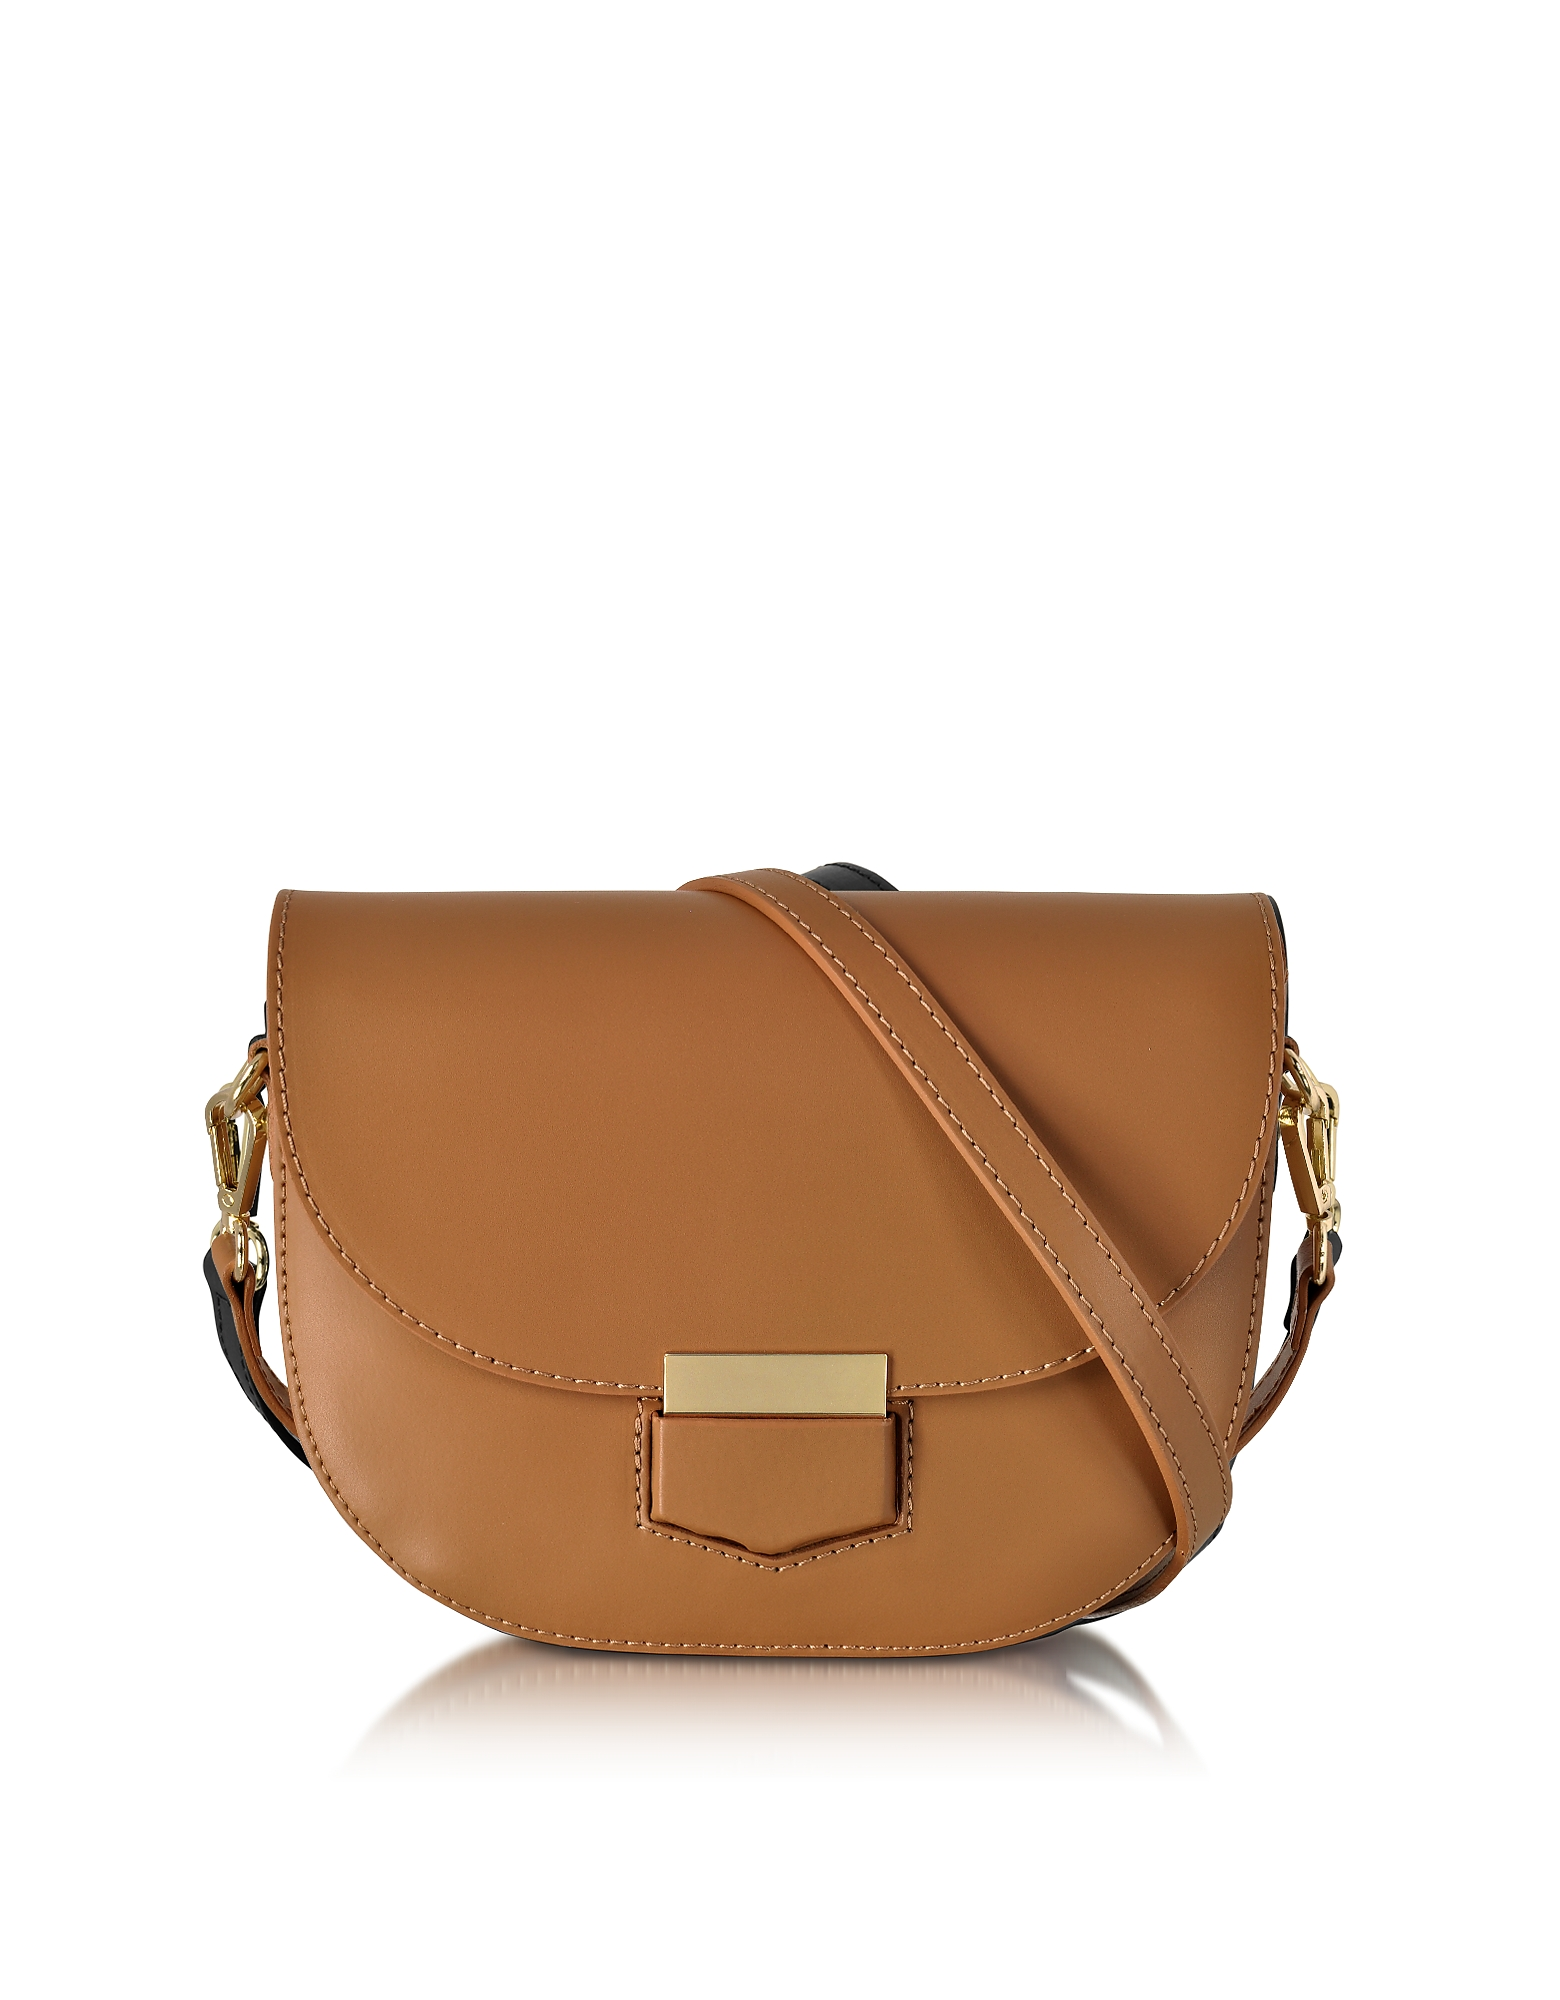 Le Parmentier Handbags, Clio Smooth Leather Flap Shoulder Bag